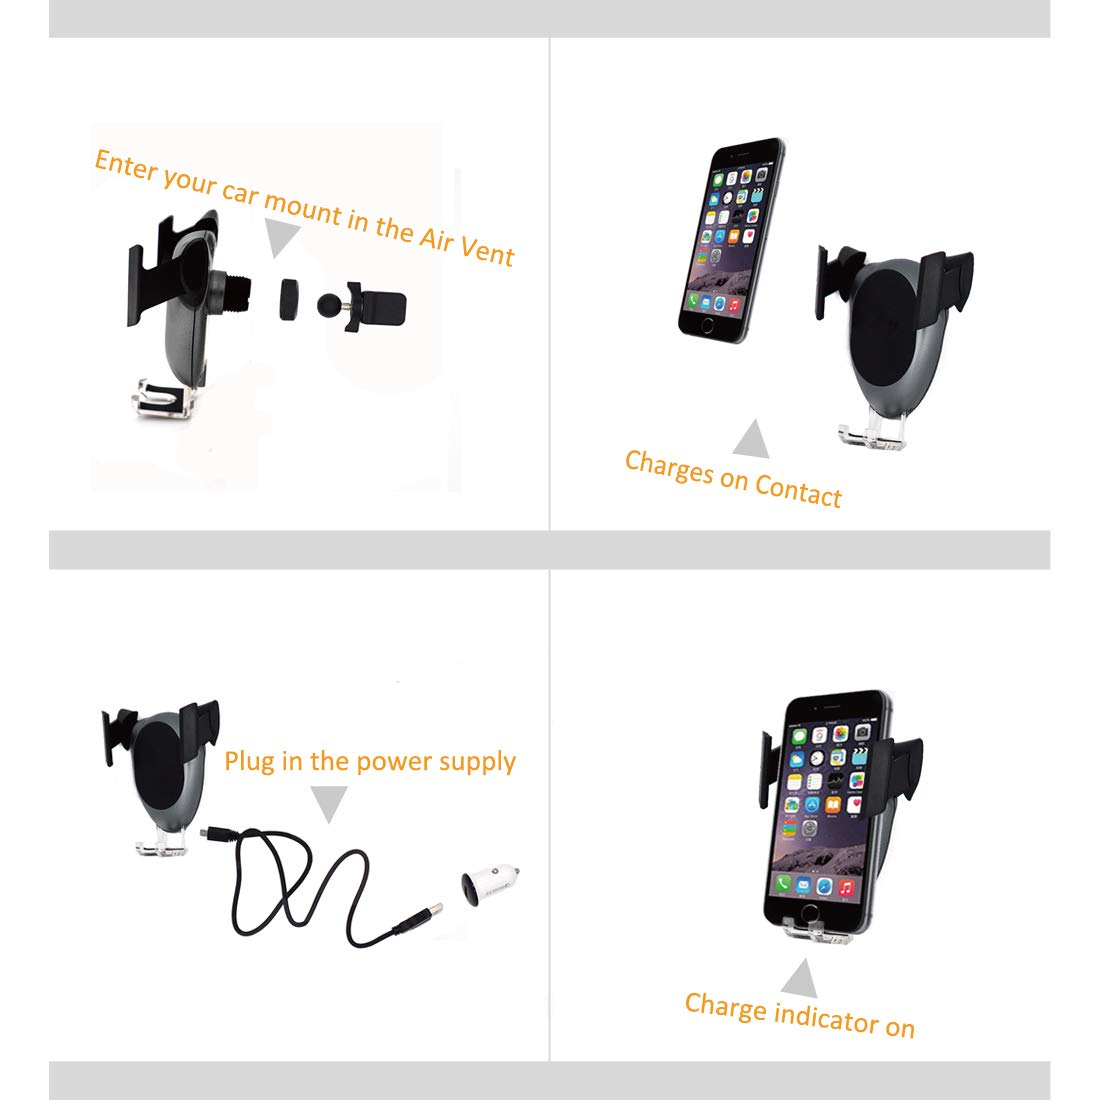 Gravity Car Mount Air Vent Phone Holder Optimize Heat Dissipation for iPhone X//8//8 Plus Samsung Galaxy S8//S8 Plus,//S7//S7 Edge//S6 Edge Plus T-Tech-Electronic Fast Wireless Car Charger 10W